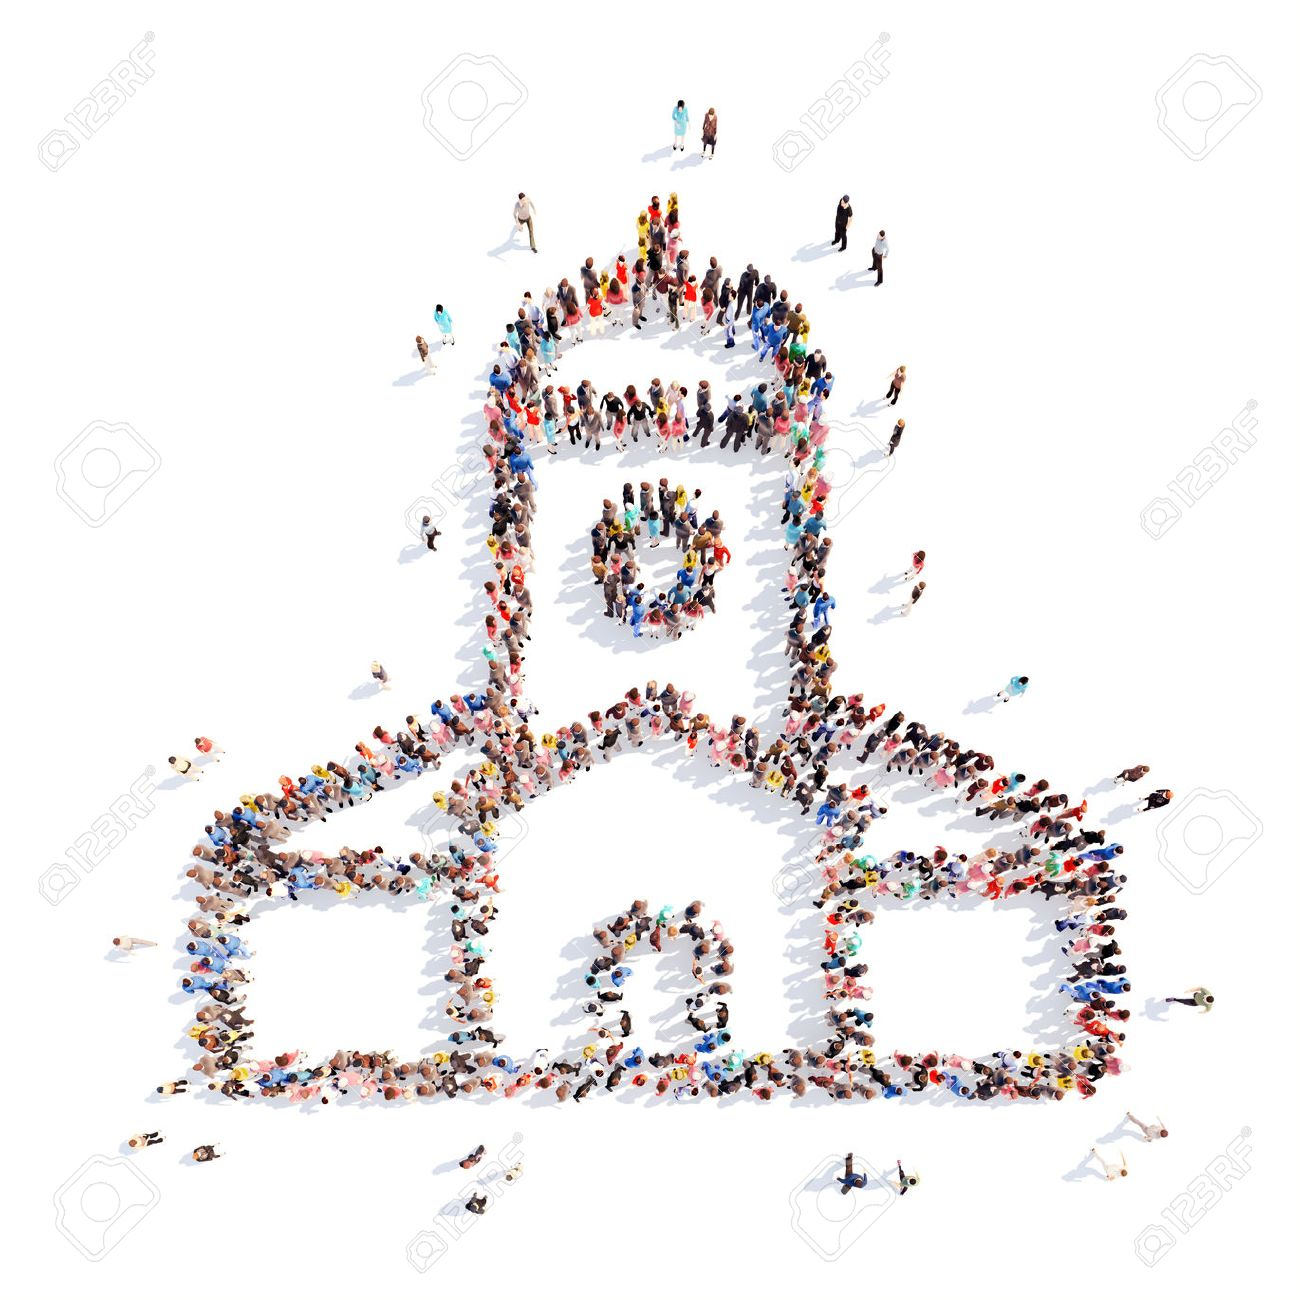 Large group of people in the form of the church. Isolated, white background. - 39260902